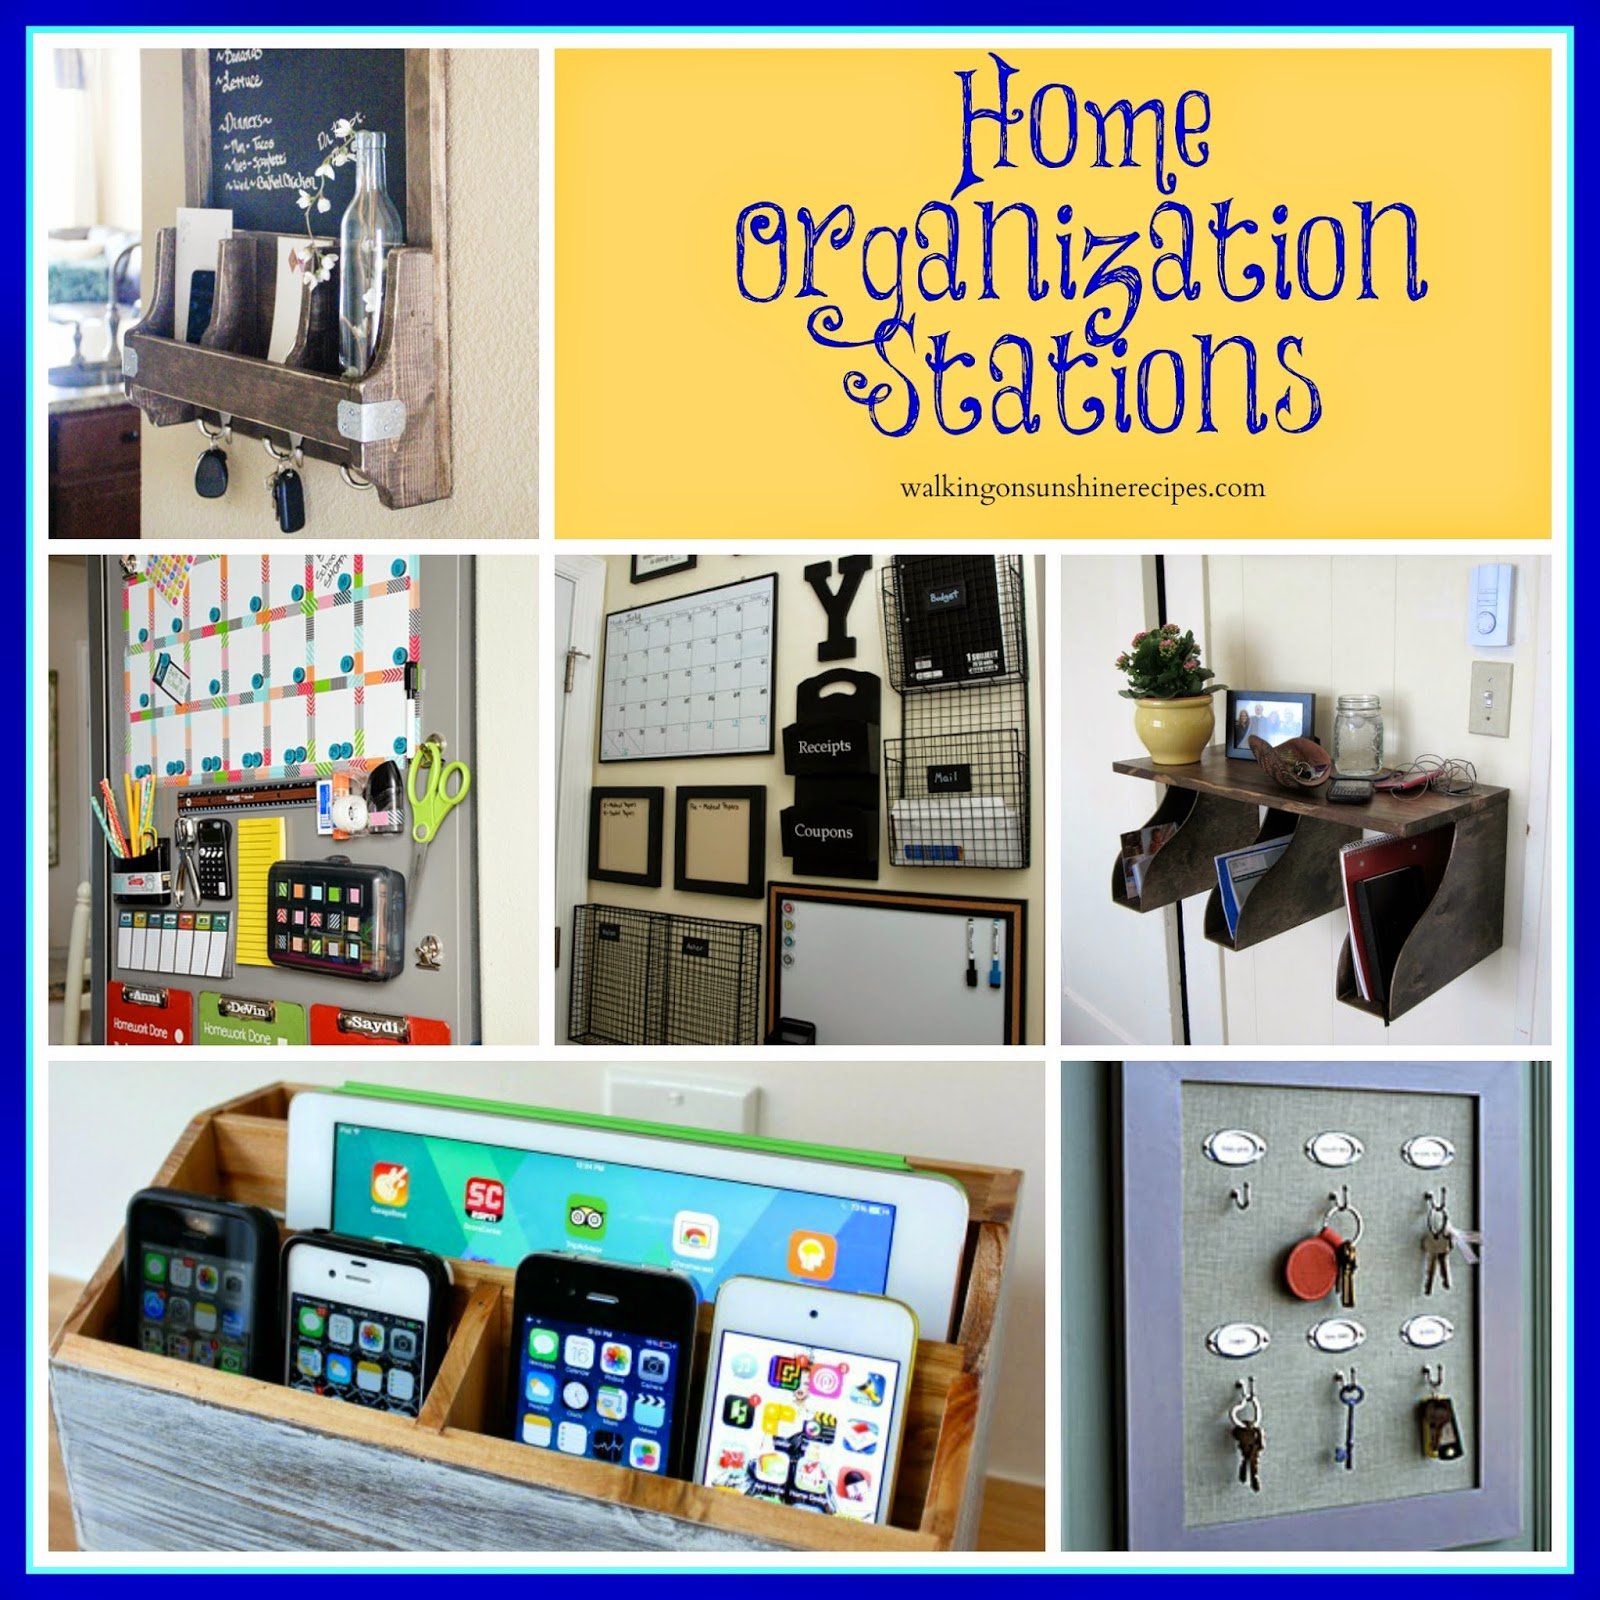 Here are some great ideas to help with your home organization and create beautiful command stations from Walking on Sunshine Recipes.